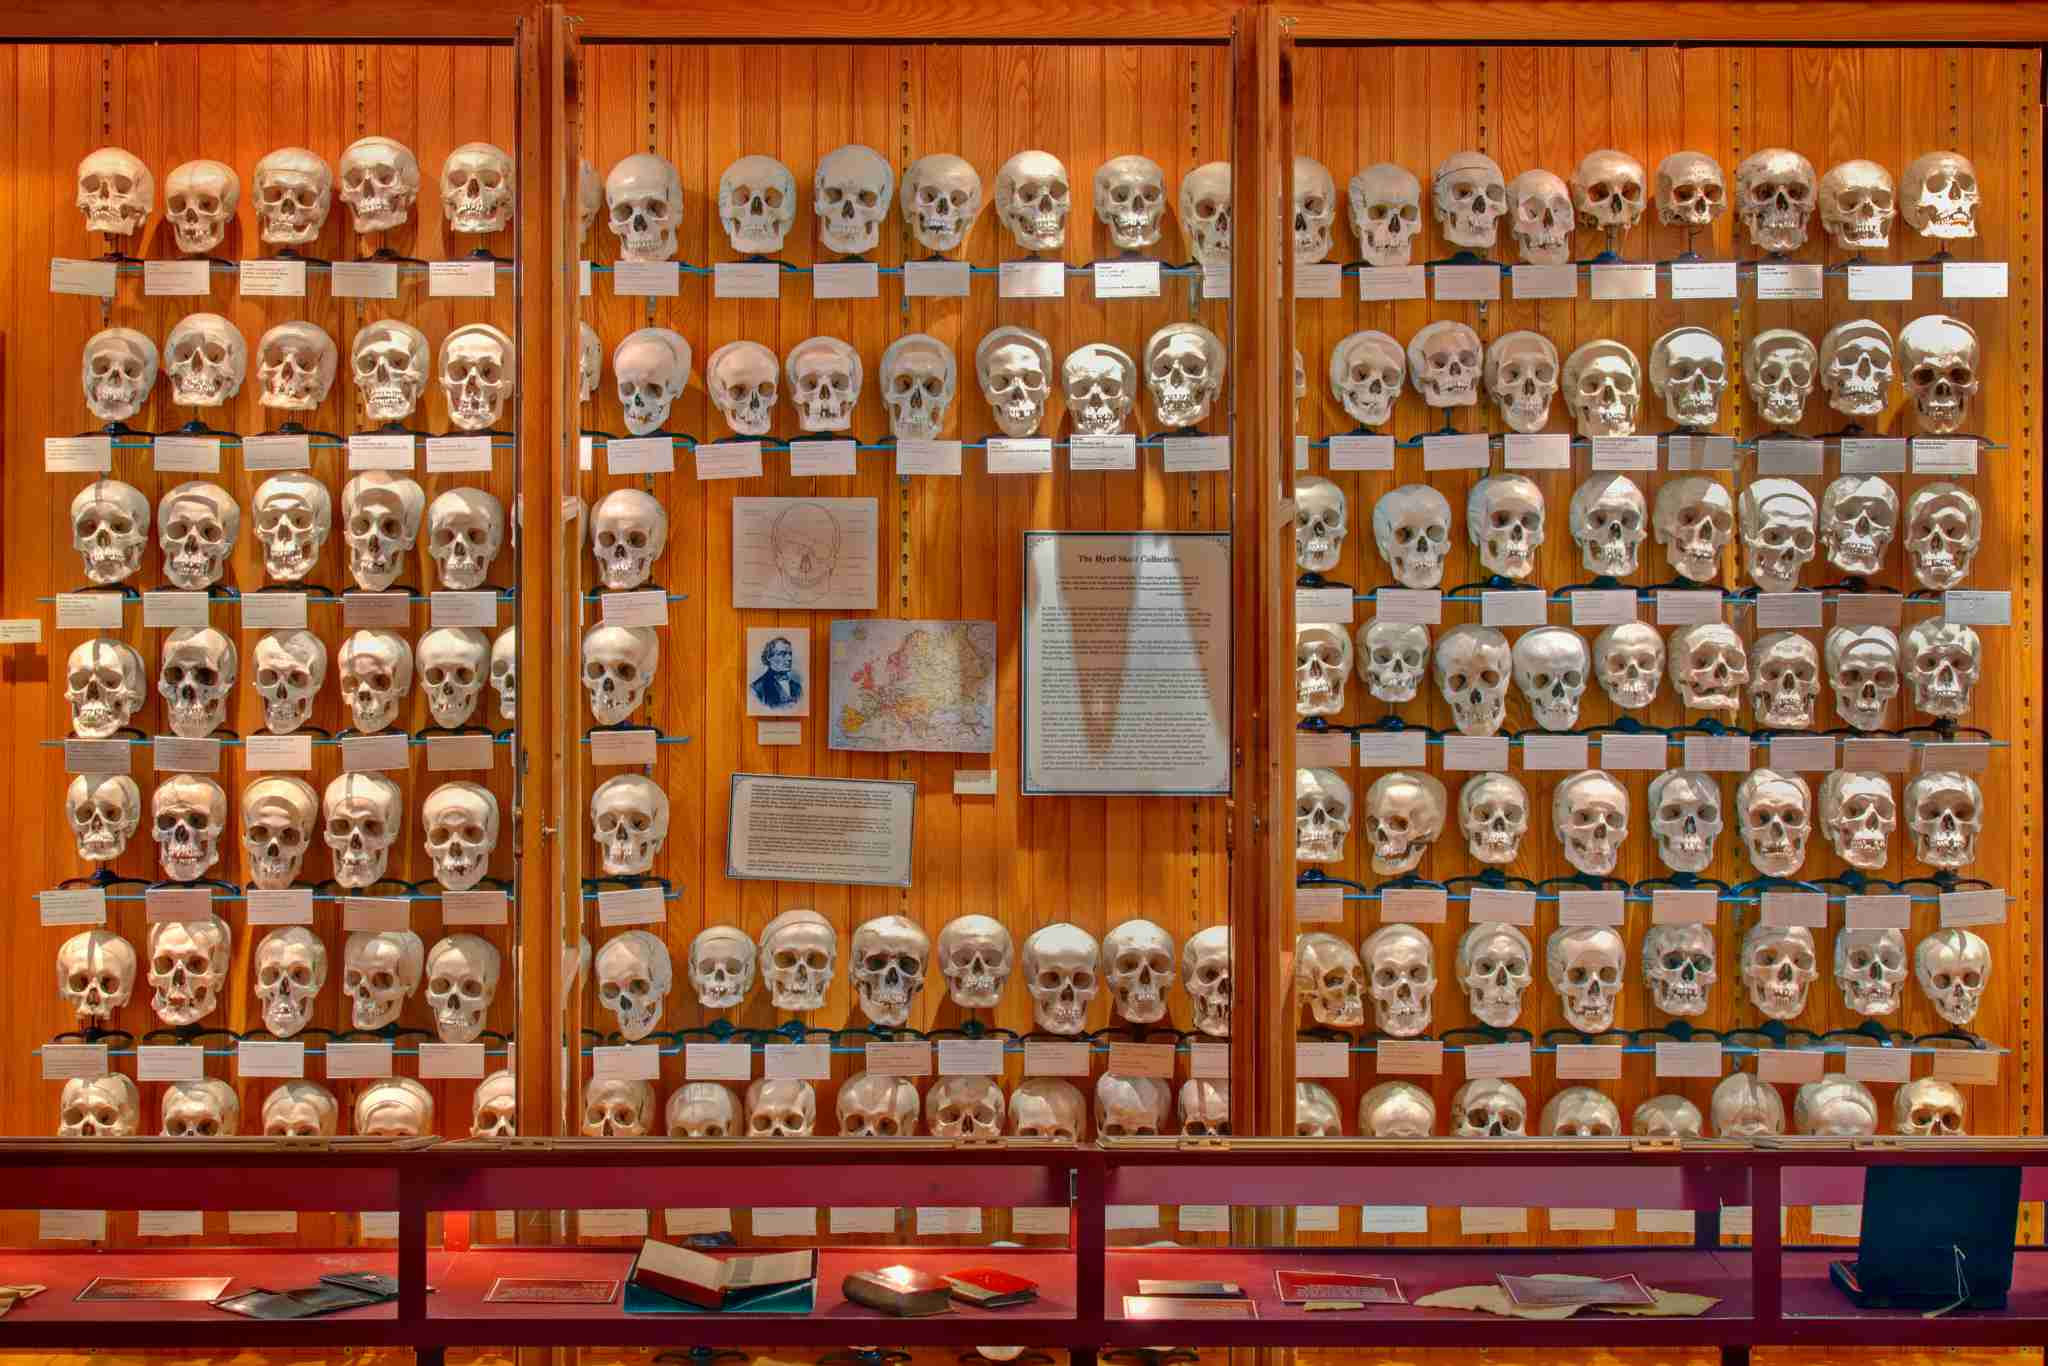 Image courtesy of George Widman for the Mütter Museum of The College of Physicians of Philadelphia.